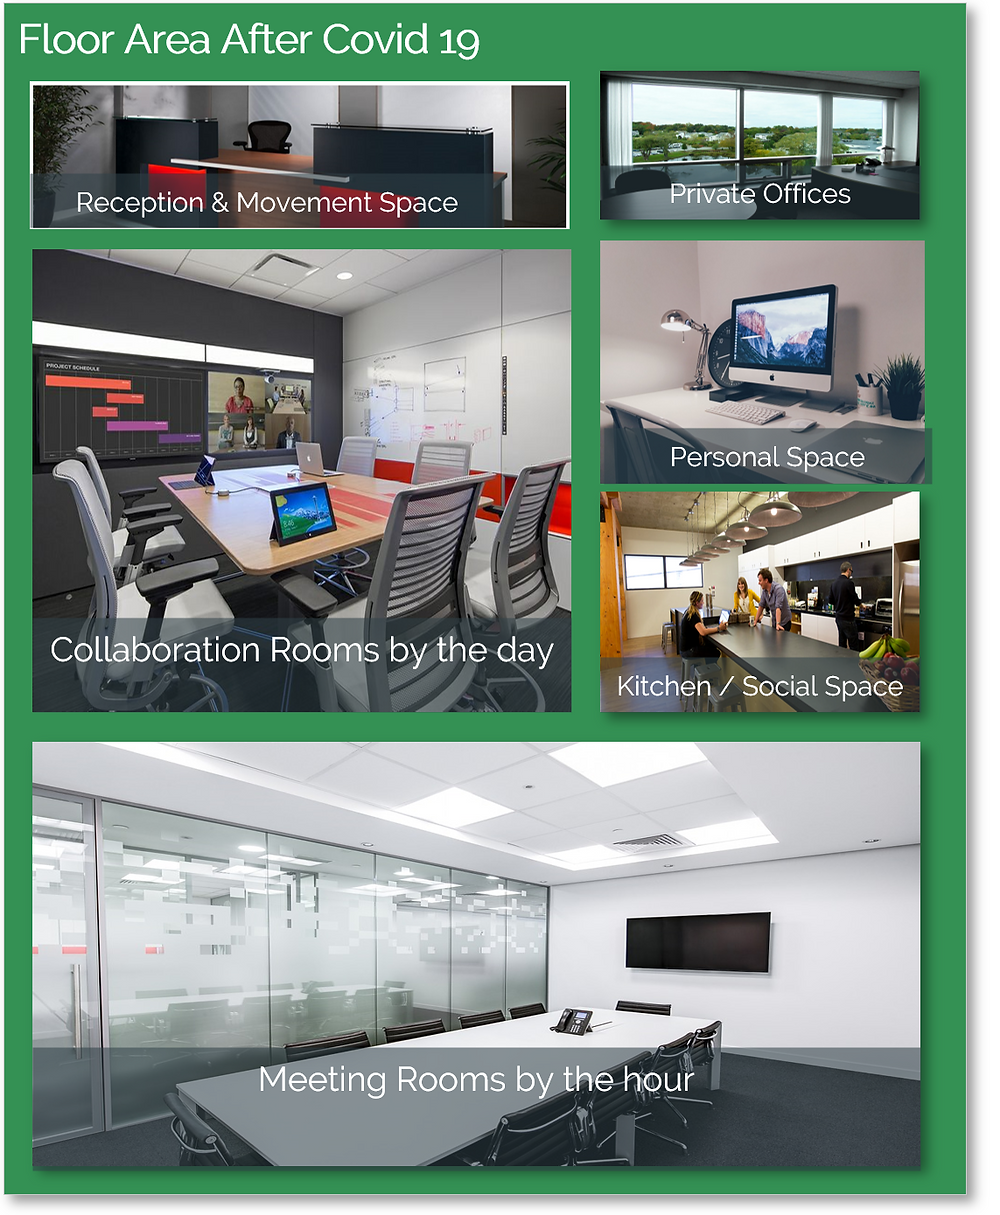 Another image of office space,  this time dominated by meeting and collaboration rooms.